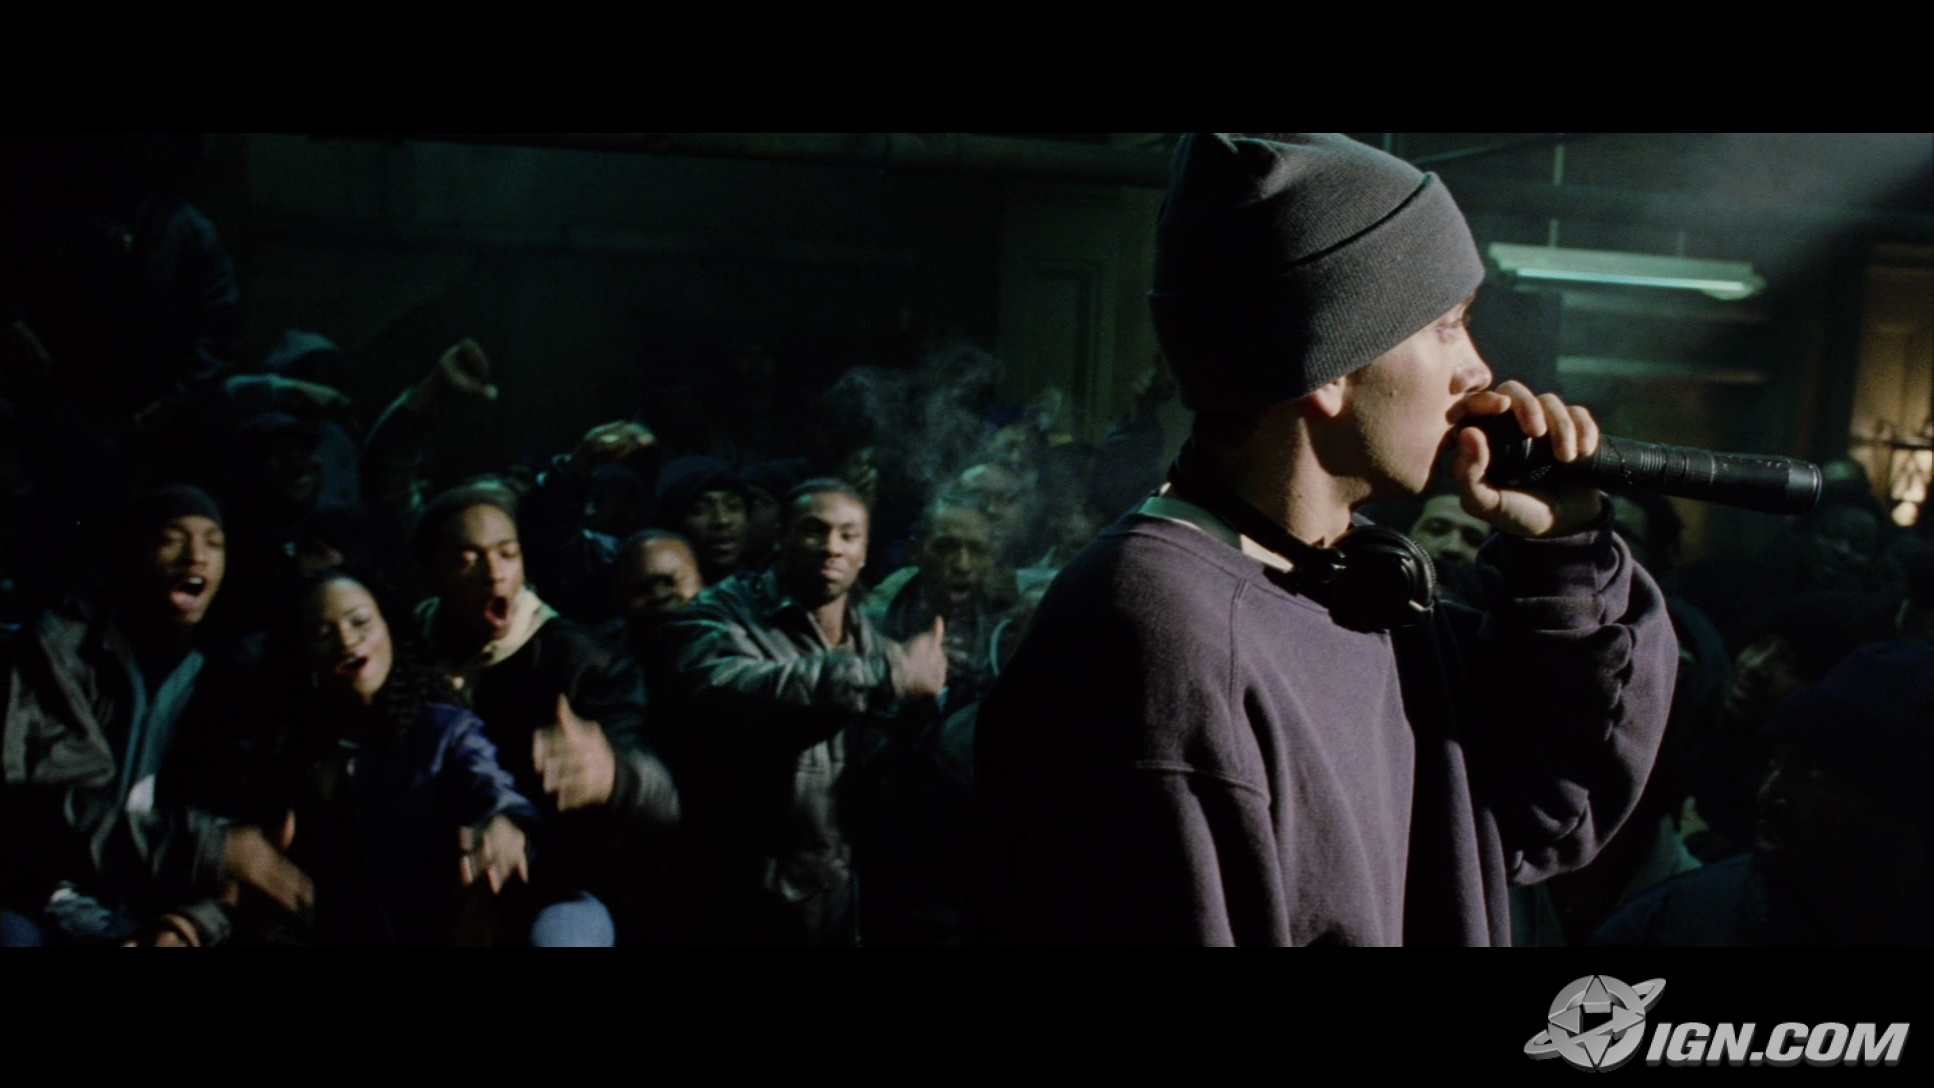 6 during the rap battle scenes, eminem was suppose to just mime his words instead of talking